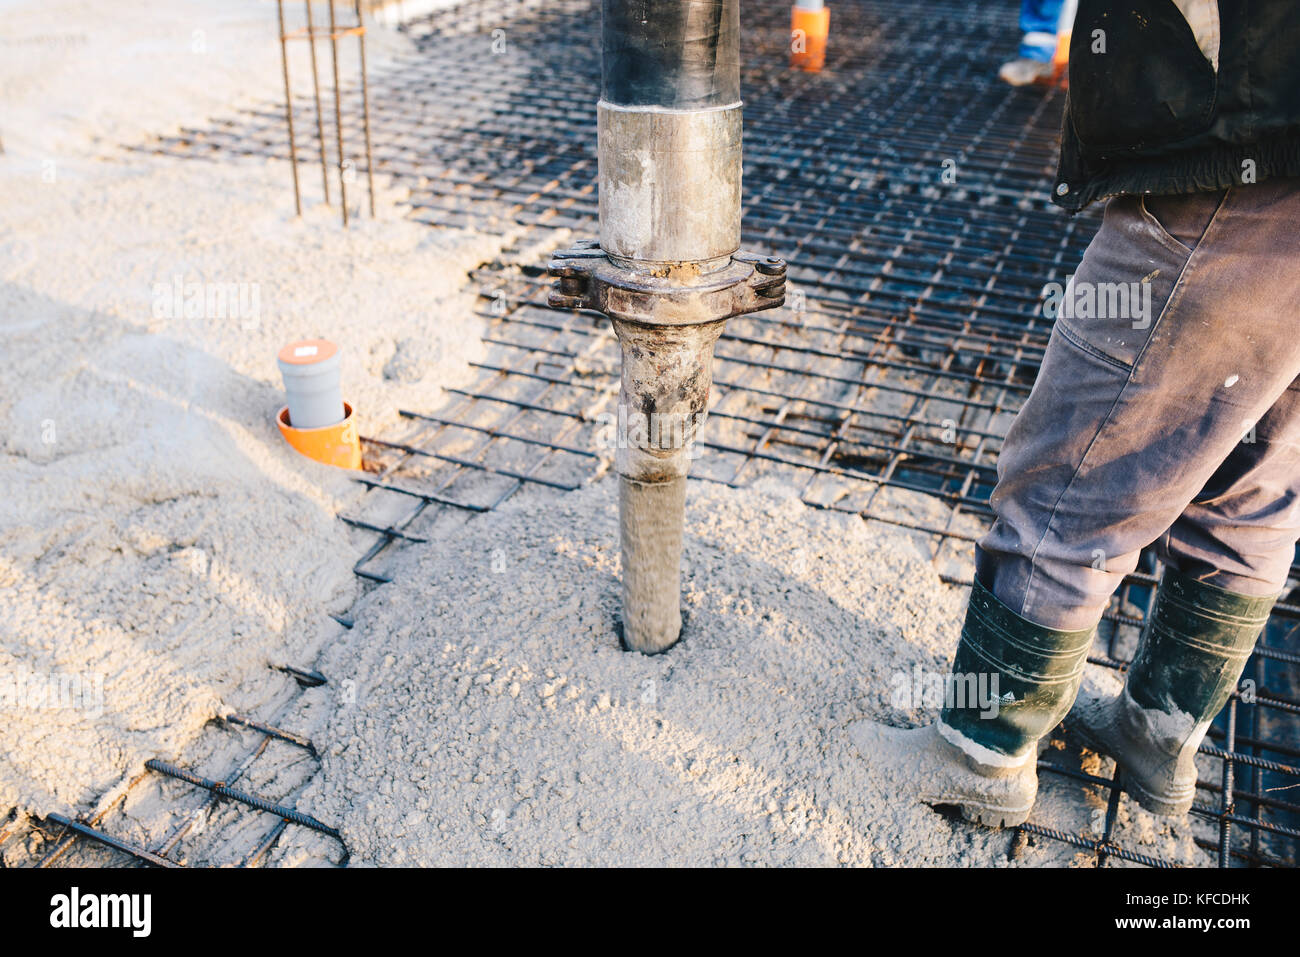 Concrete pouring during commercial concreting floors of buildings in construction site - concrete slab Stock Photo